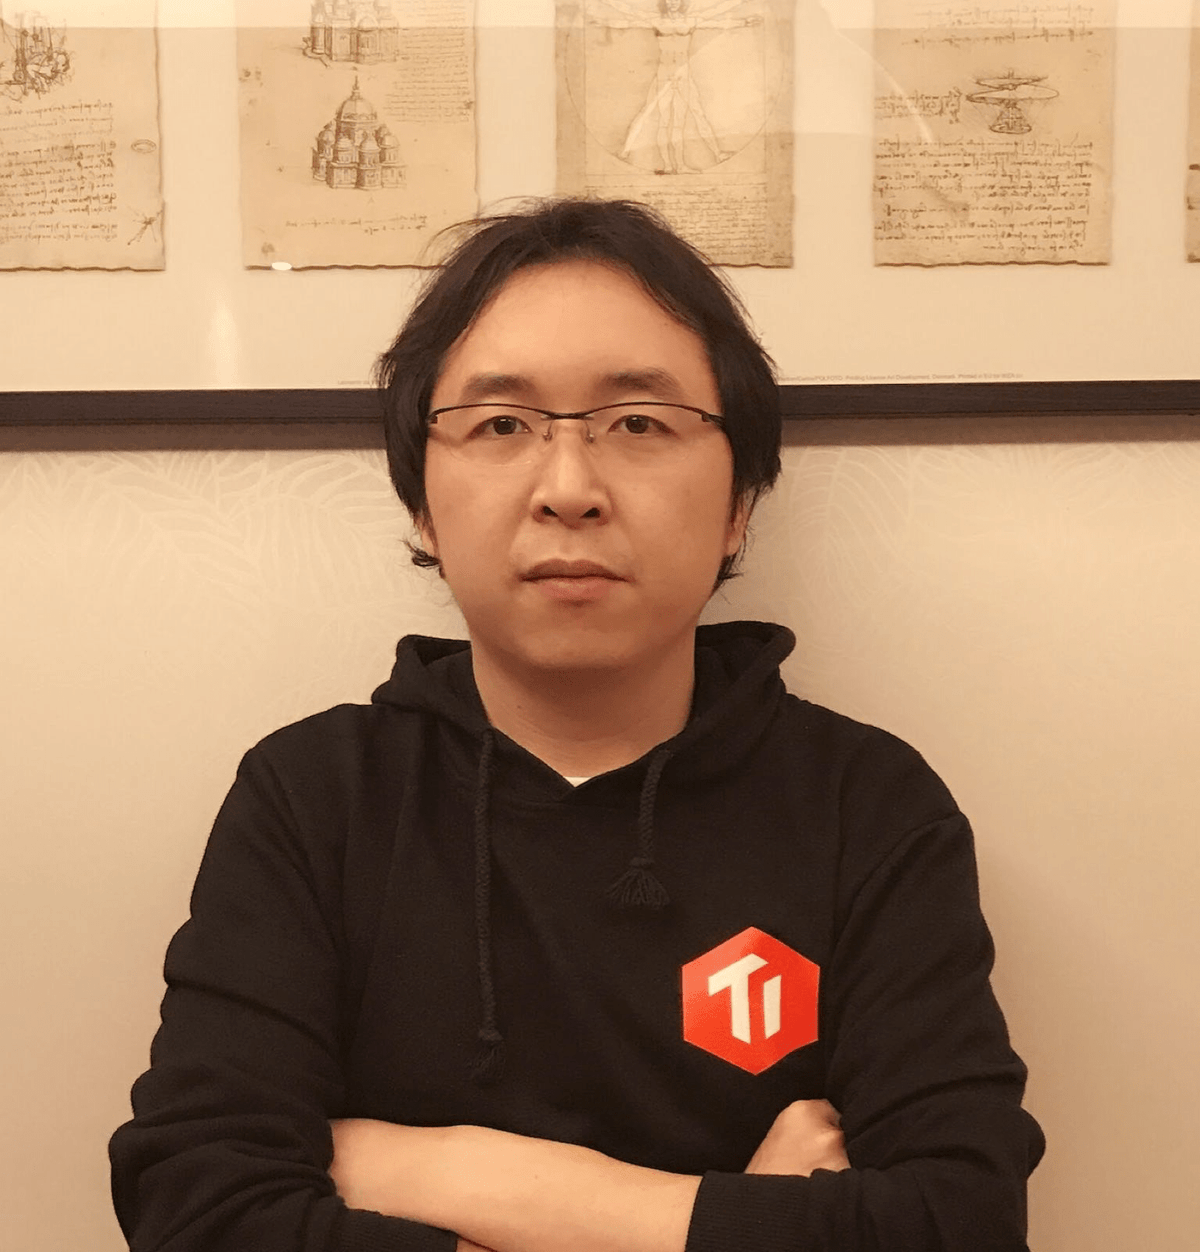 Co-founder and CTO of PingCAP